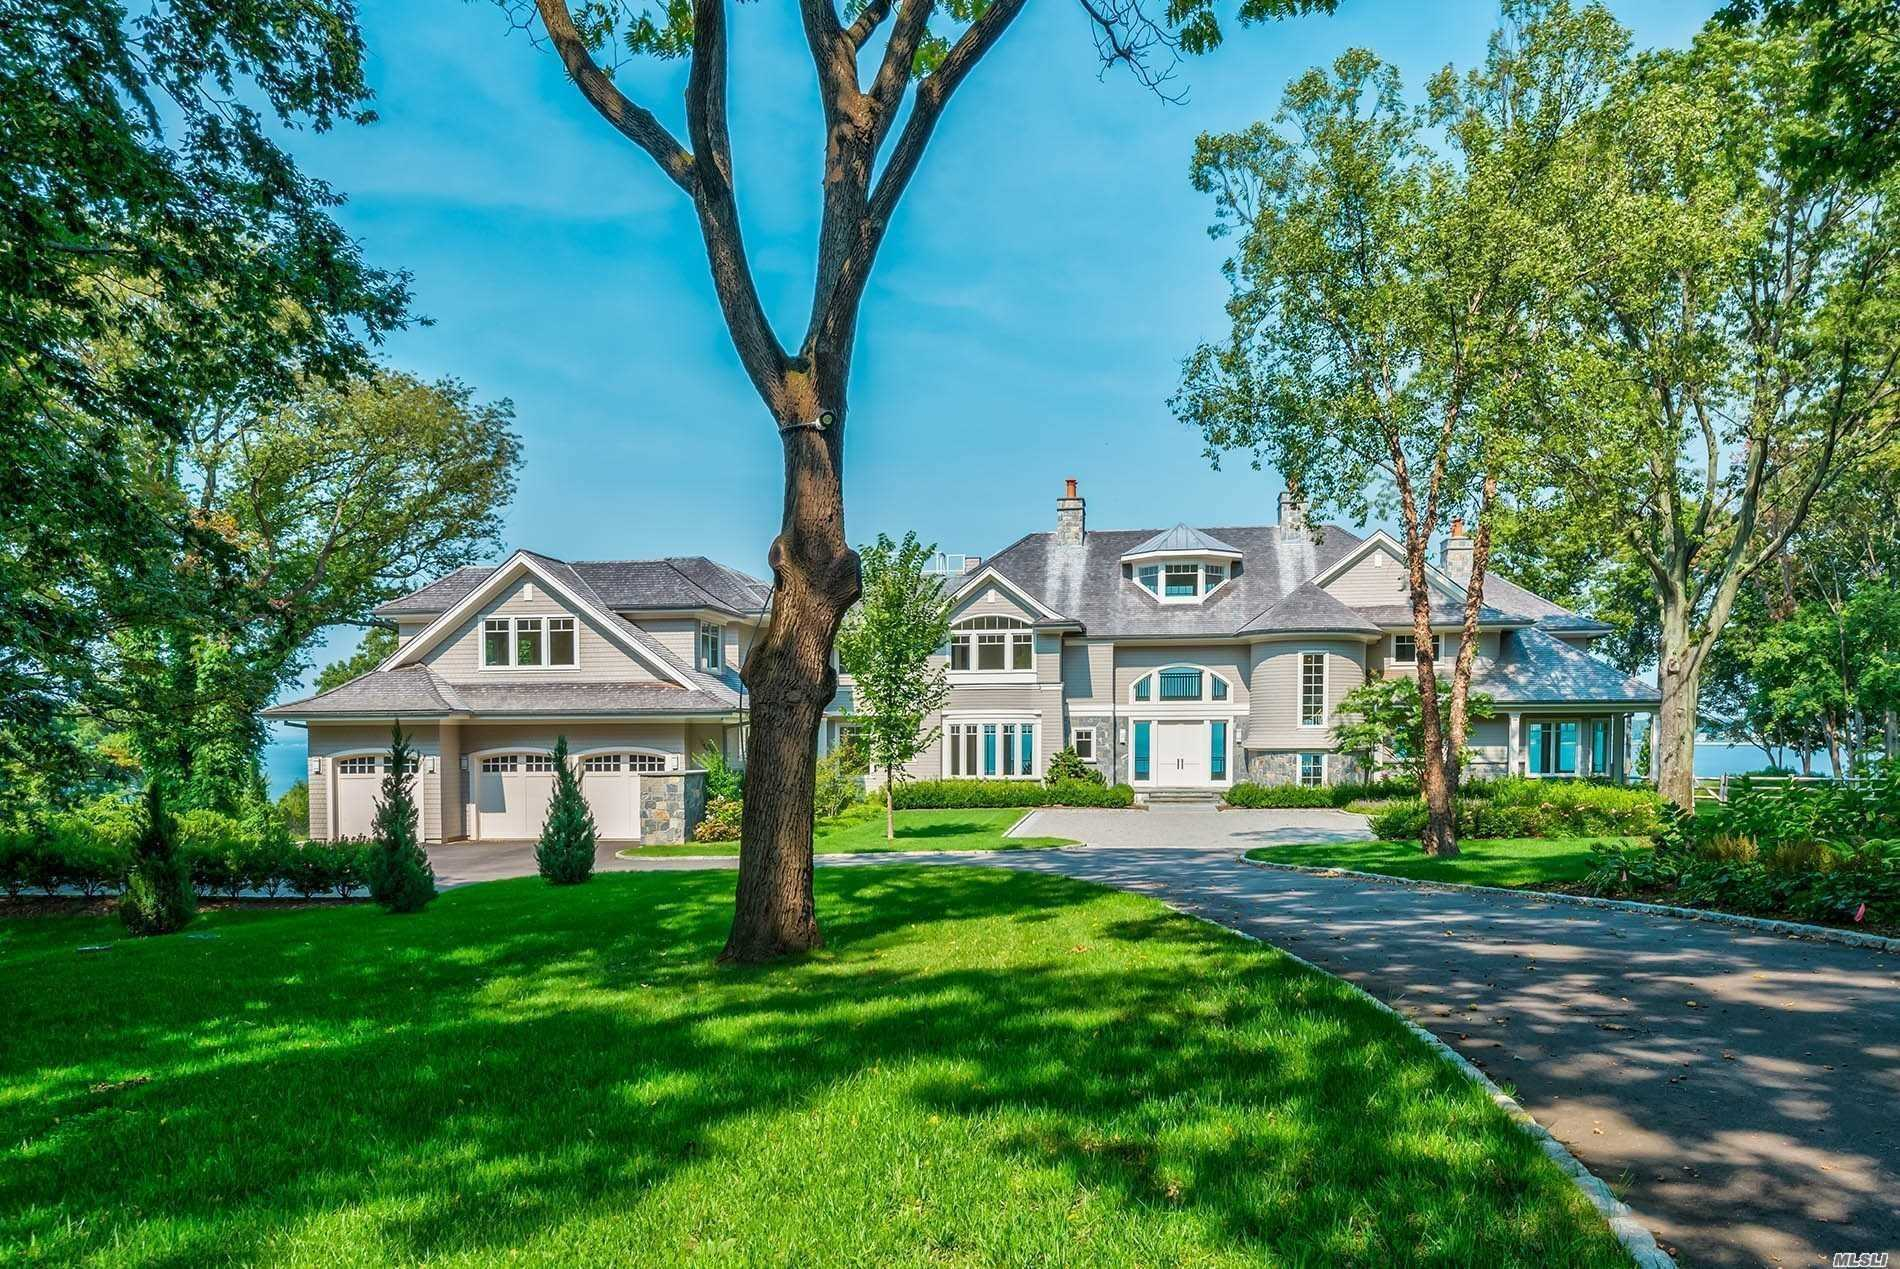 87 Old House Lane, Sands Point, NY 11050